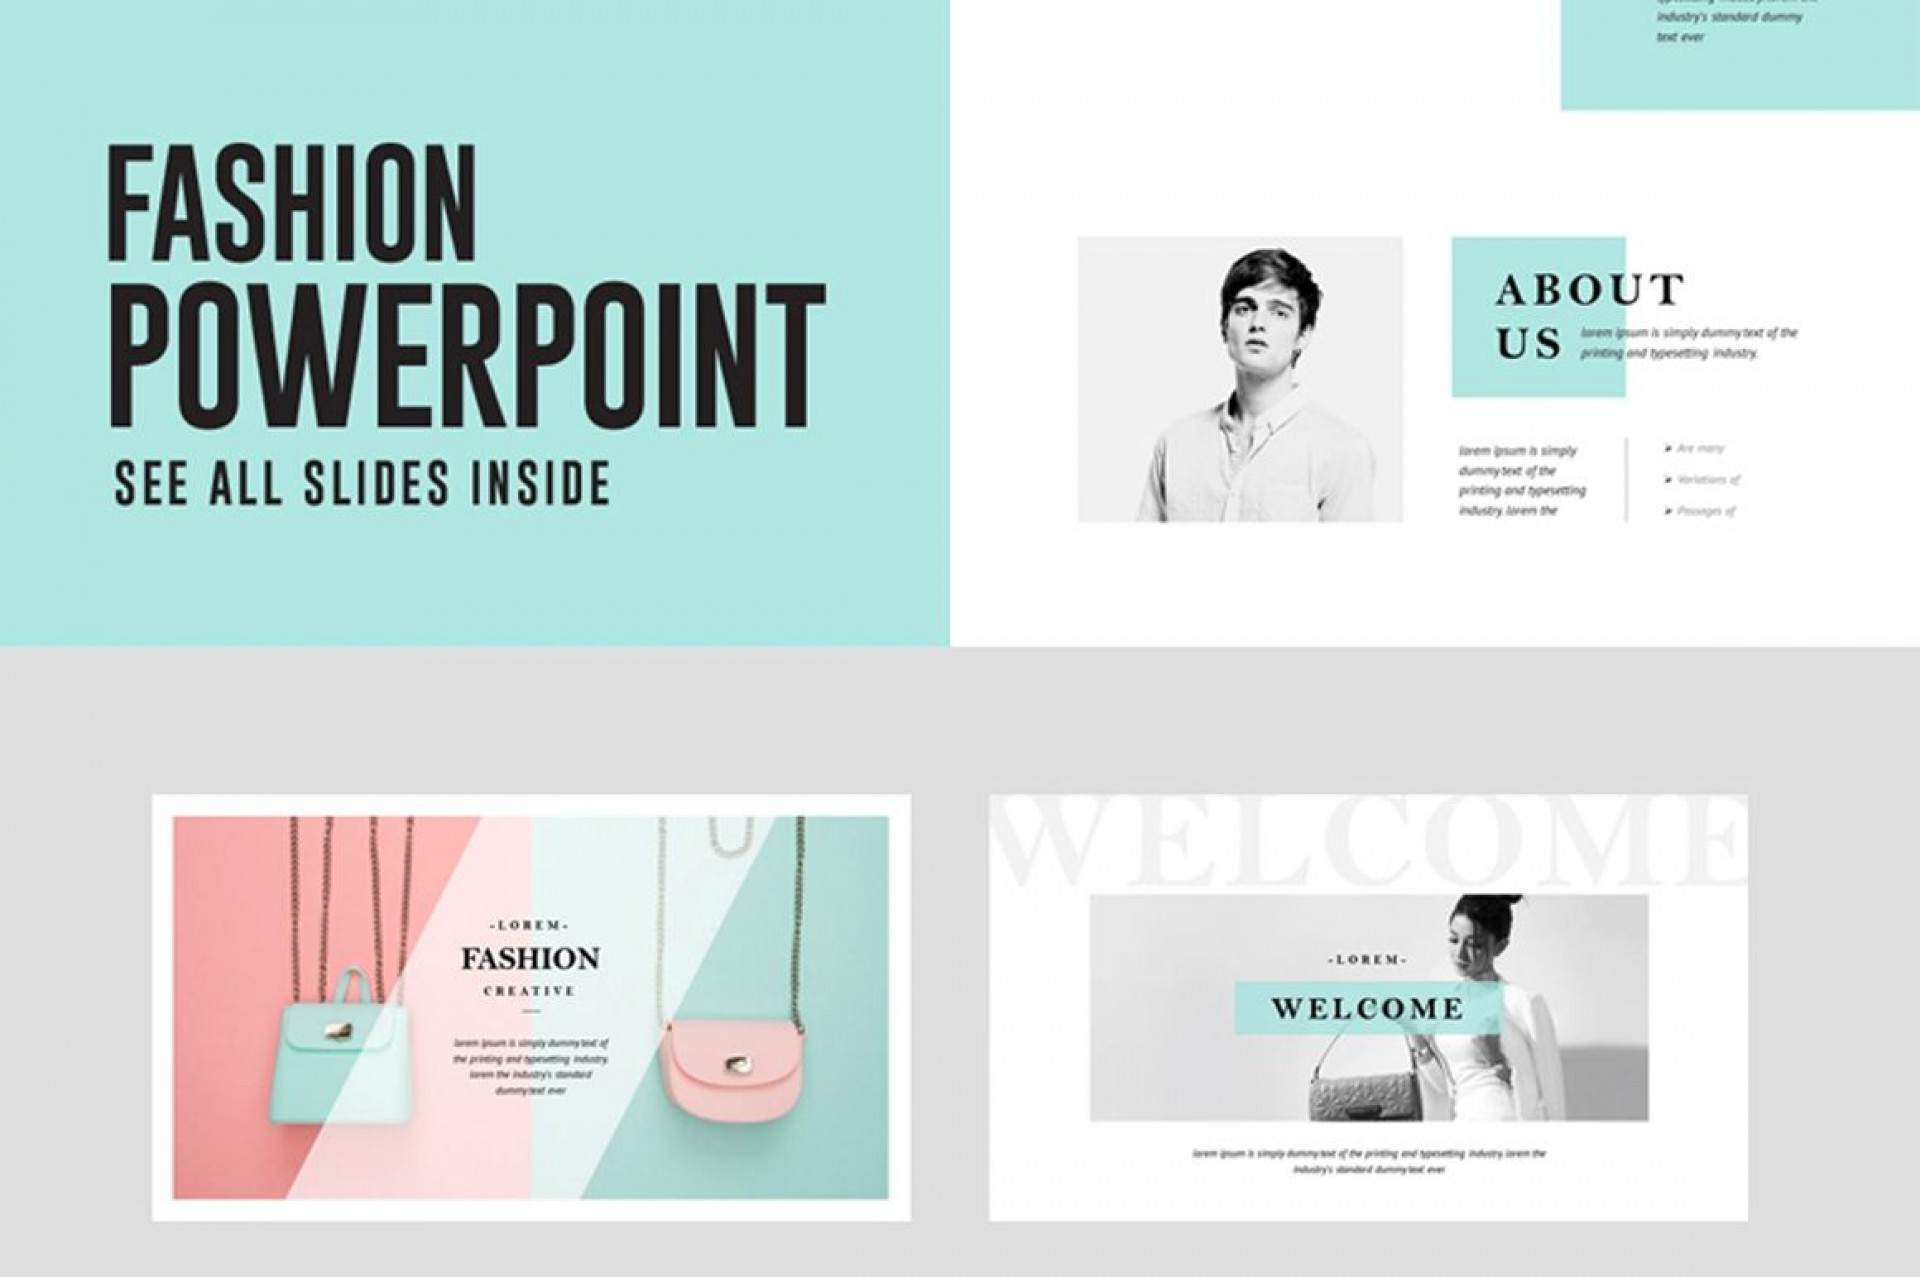 001 Stupendou Power Point Presentation Template Free Picture  Powerpoint Layout Download 2019 Modern Busines1920